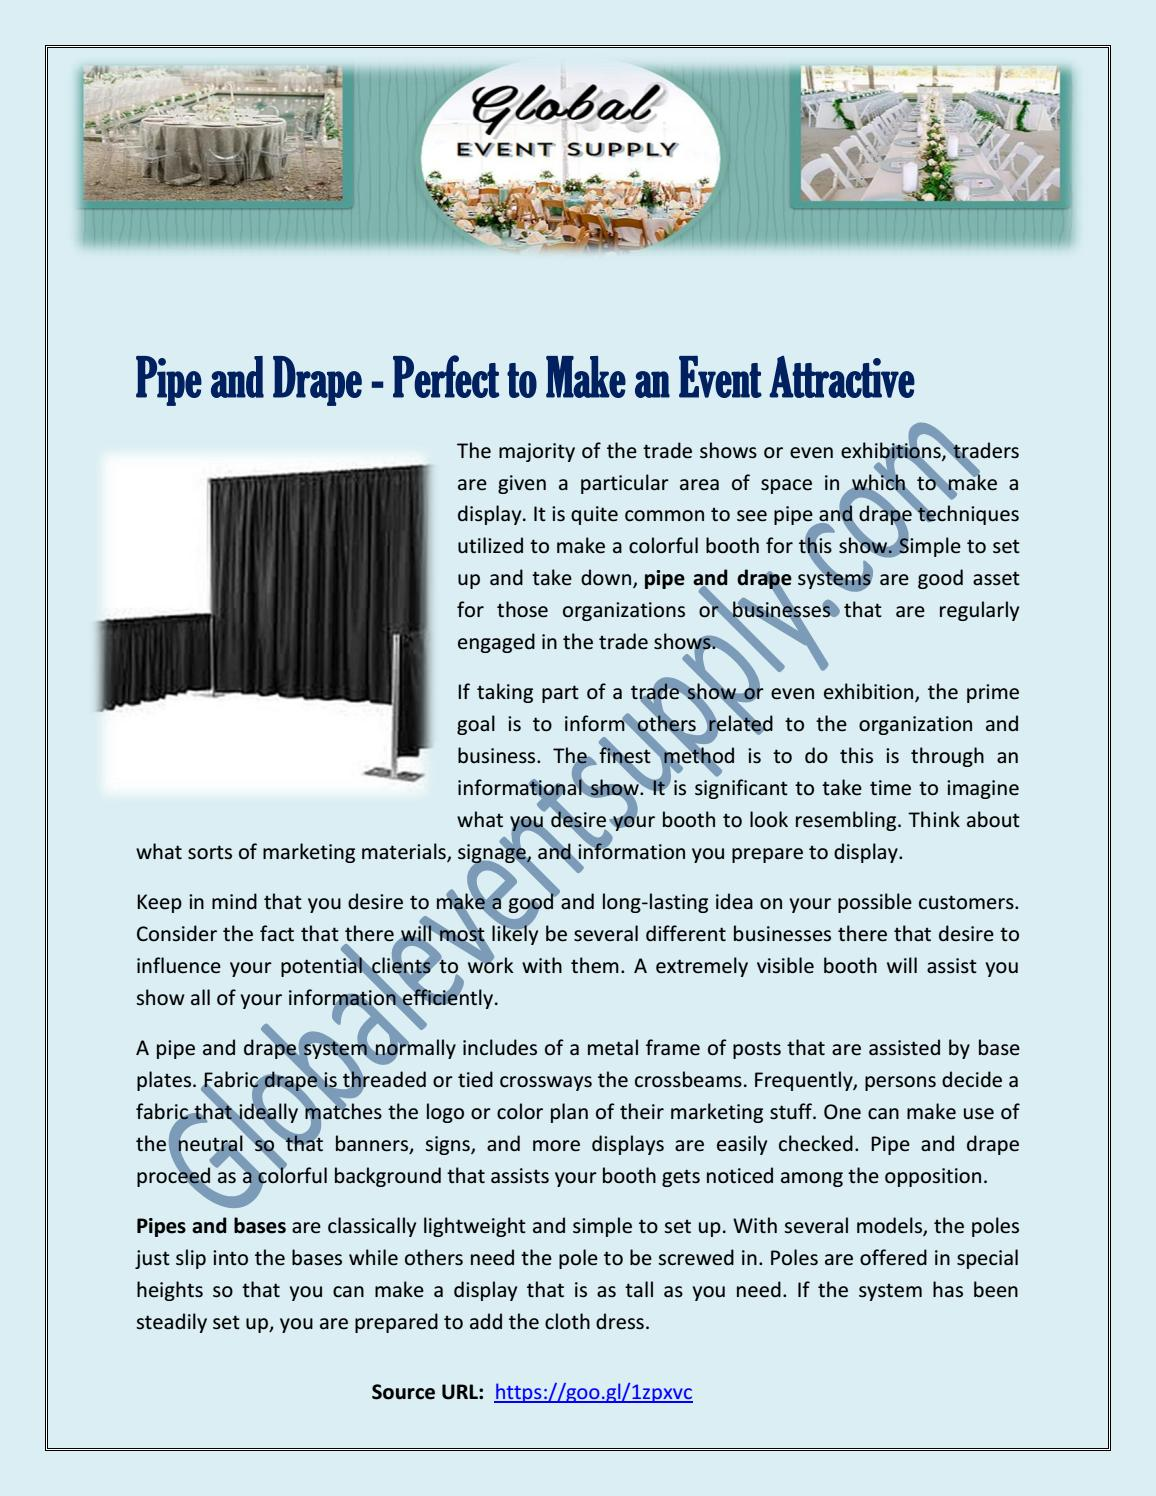 Pipe and Drape - Perfect to Make an Event Attractive by